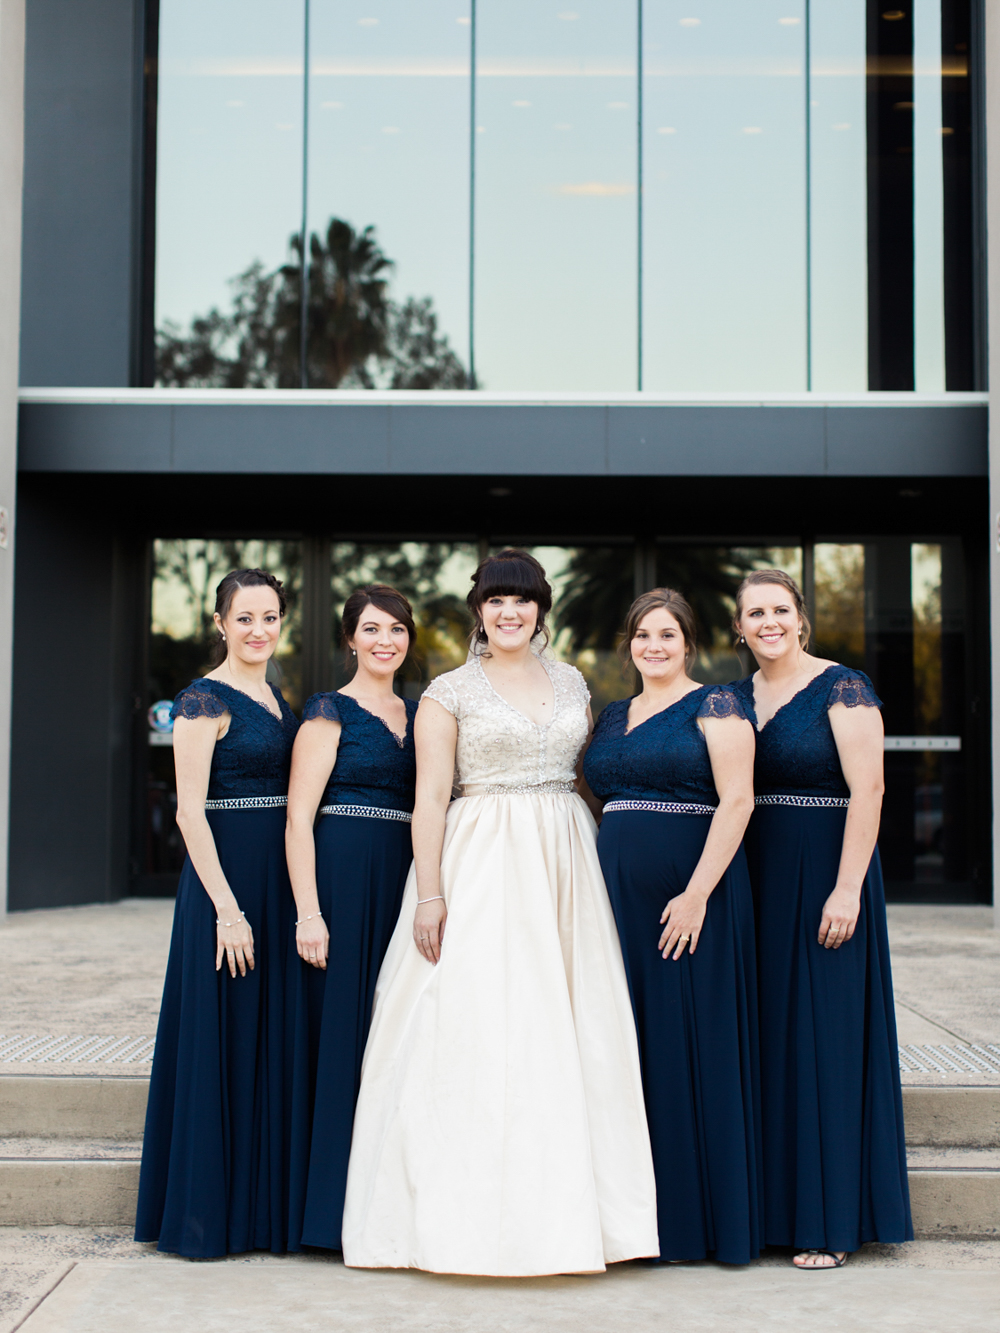 00060- Dubbo NSW Wedding Photographer Sheri McMahon.jpg